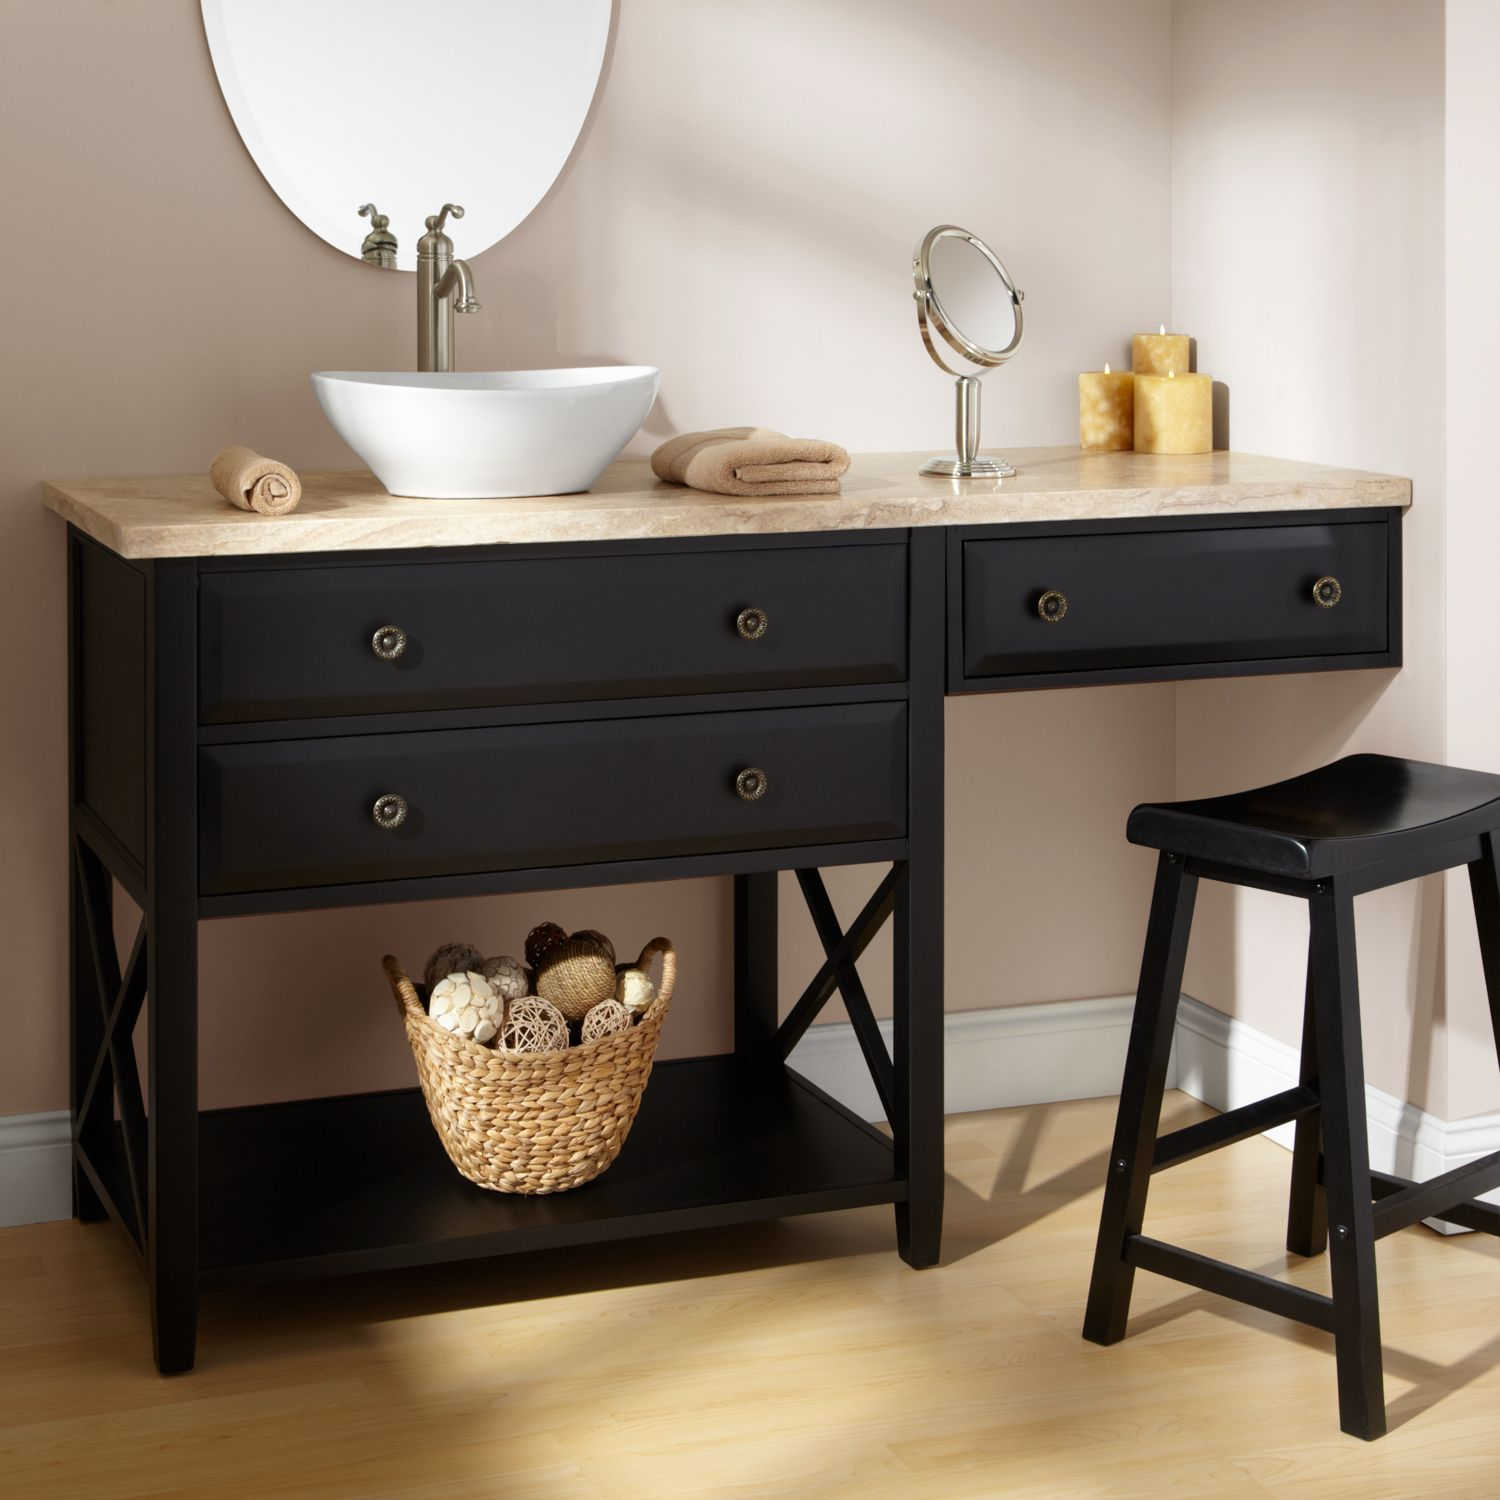 60 clinton black vanity for vessel sink with makeup area for Vessel sink vanity ideas